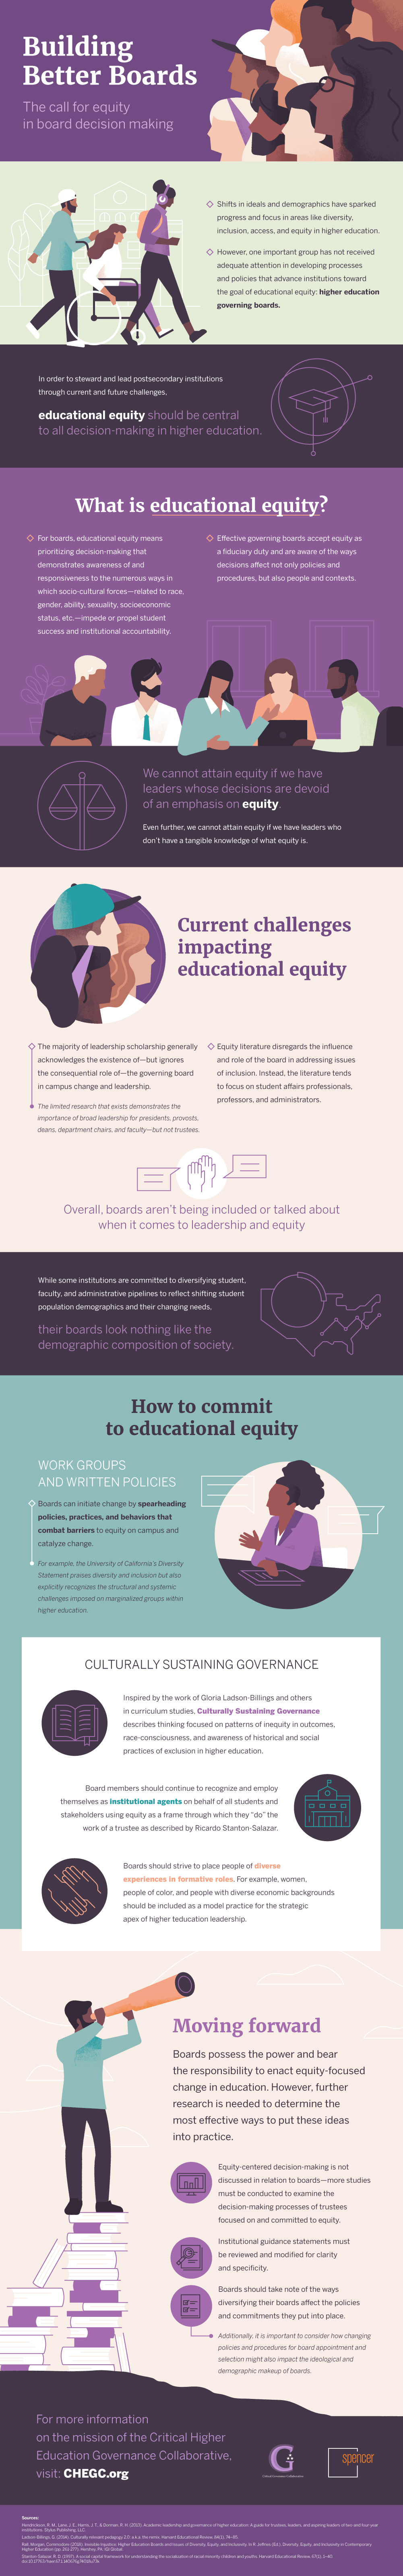 Building Better Boards: The Call for Equity in Board Decision Making